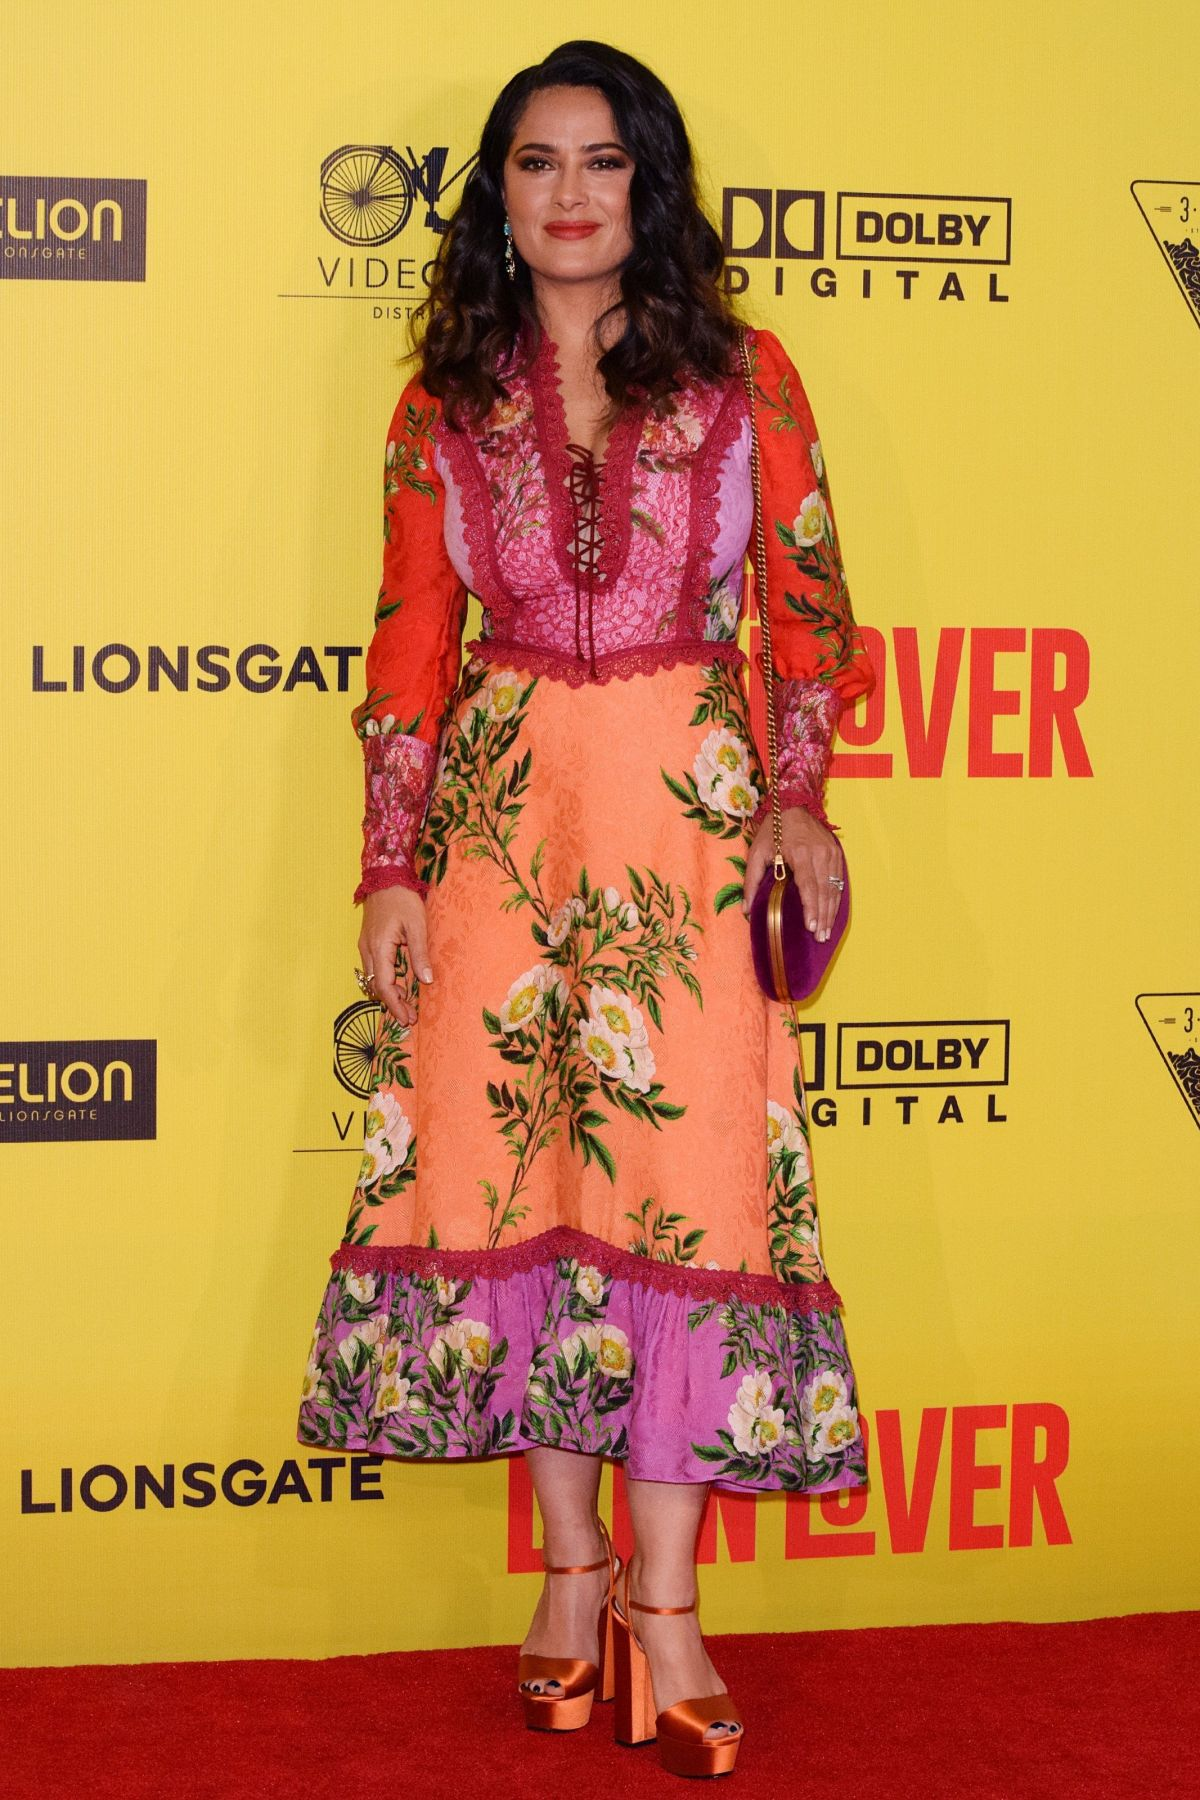 Salma hayek at how to be a latin lover premiere in mexico city 05 salma hayek at how to be a latin lover premiere in mexico city 0503 ccuart Choice Image